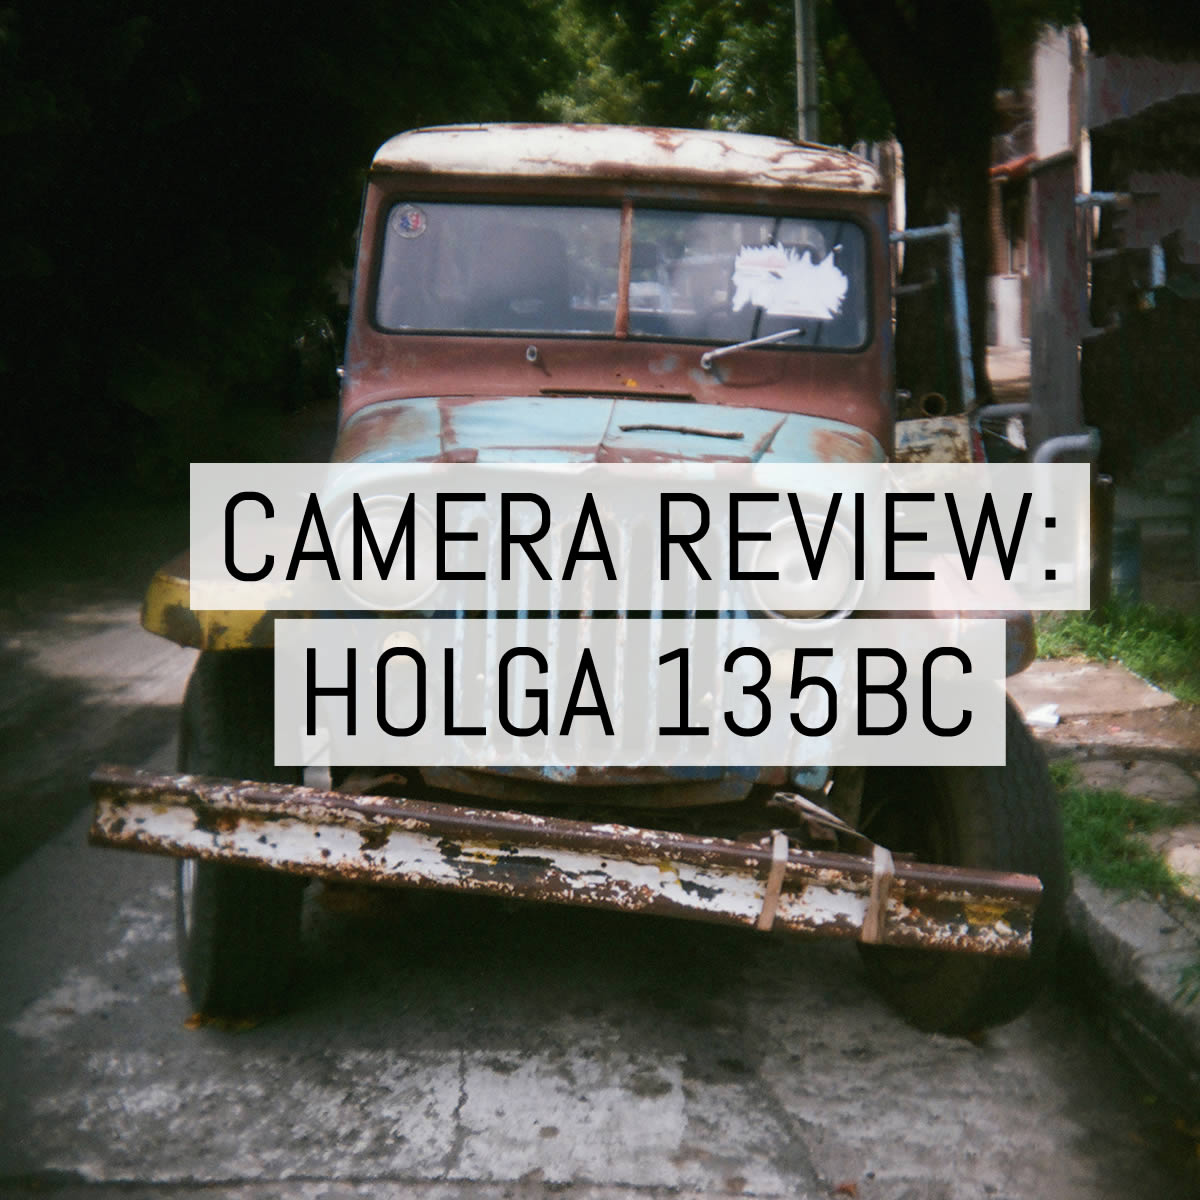 Camera review: Holga 135BC - by Lorraine Healy